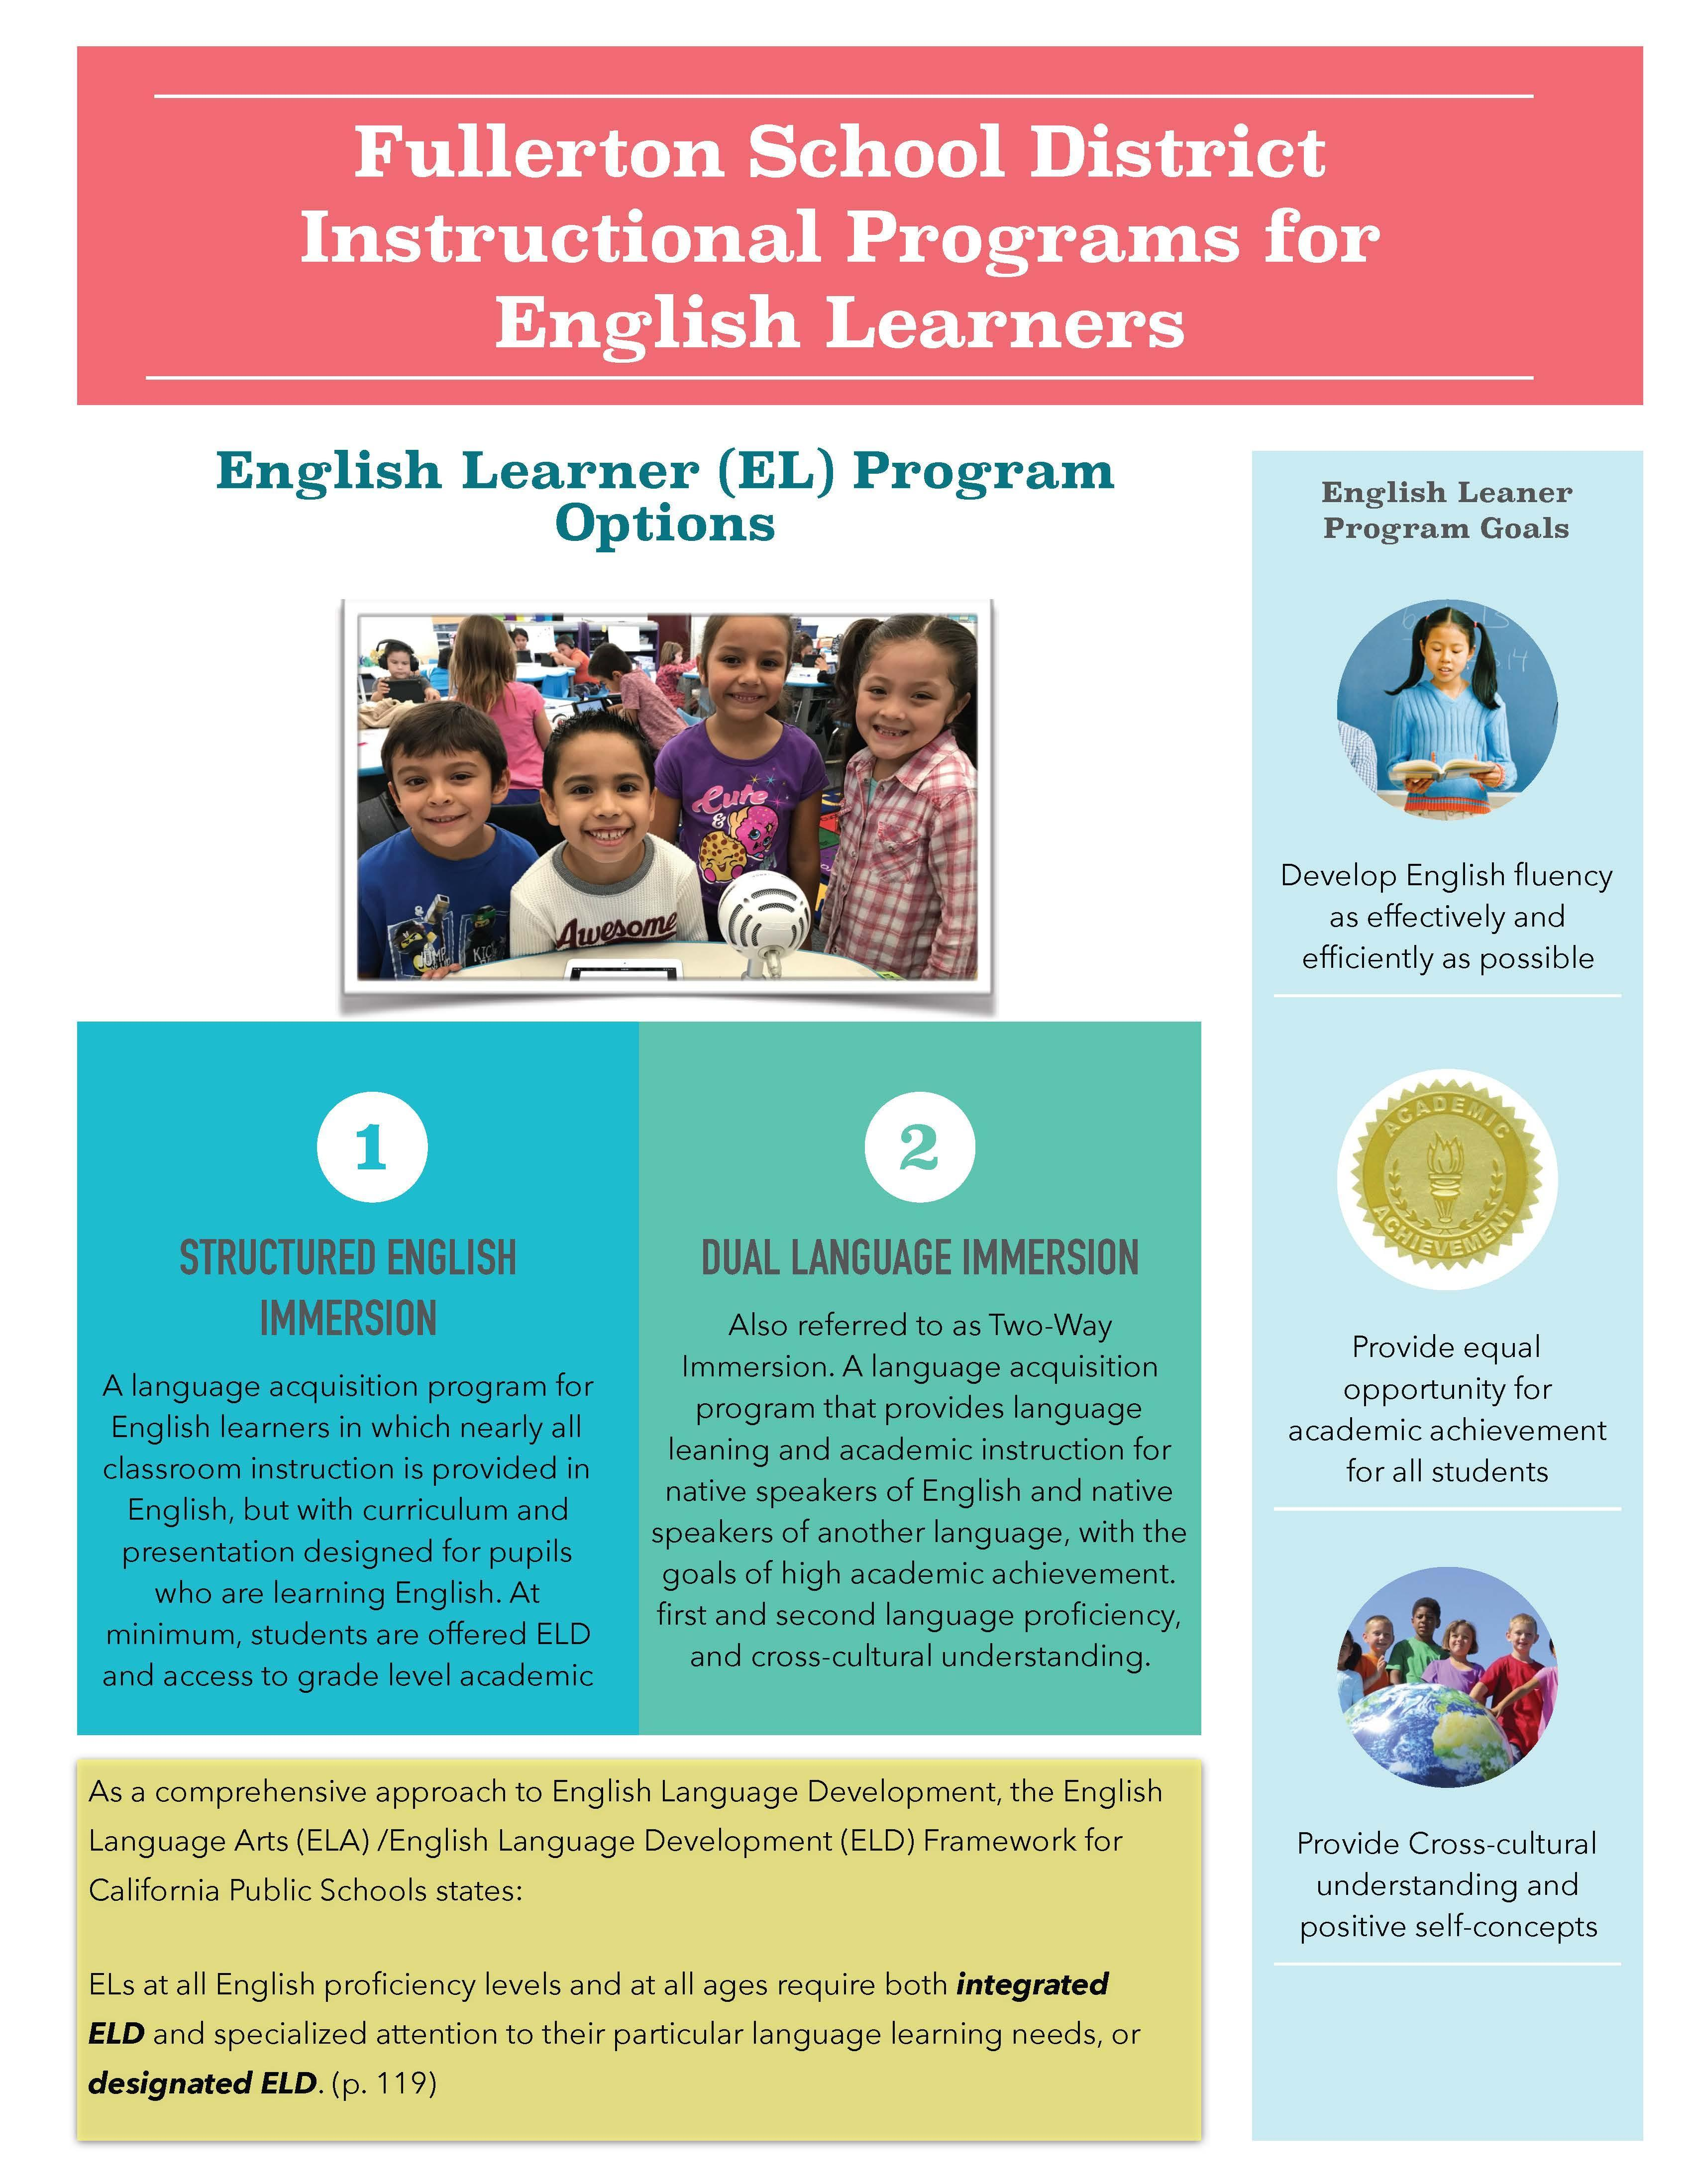 Instructional Programs for English Learners